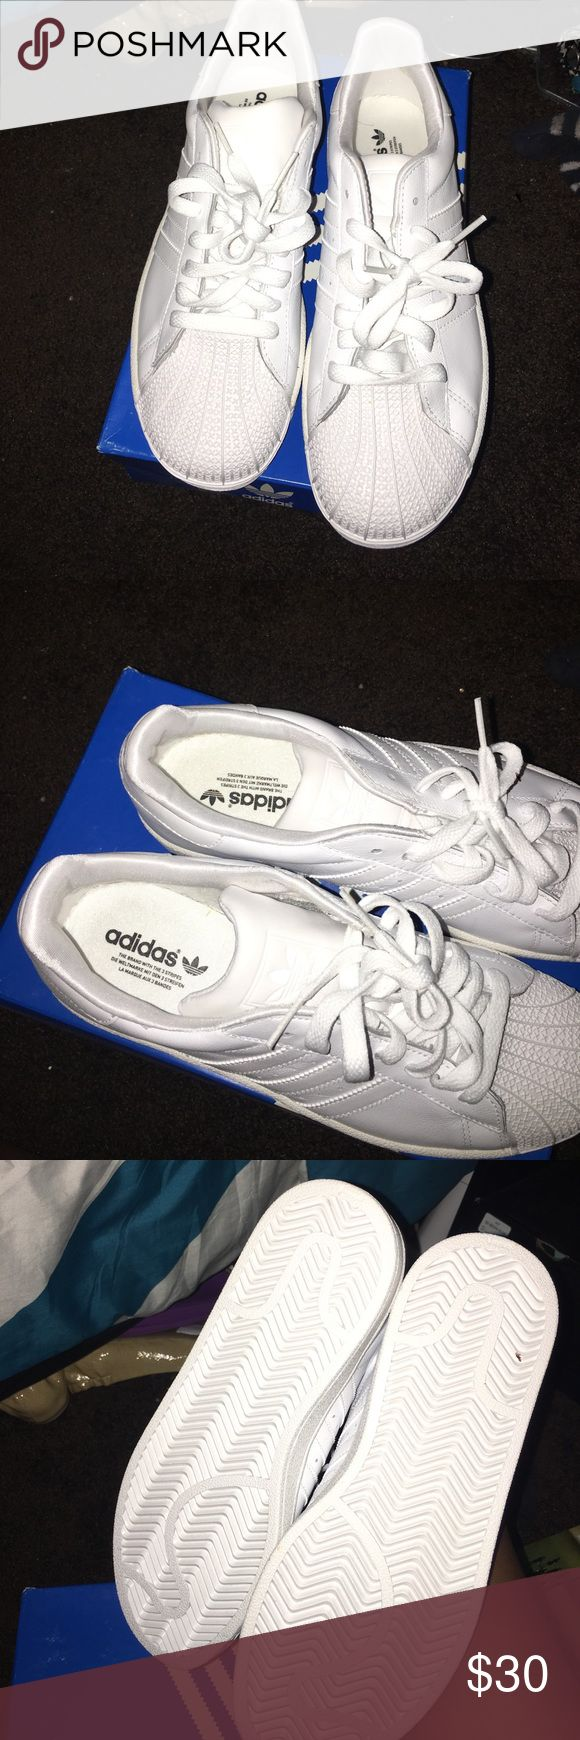 Adidas Superstar Adidas Superstar all white worn once in great condition adidas Shoes Sneakers